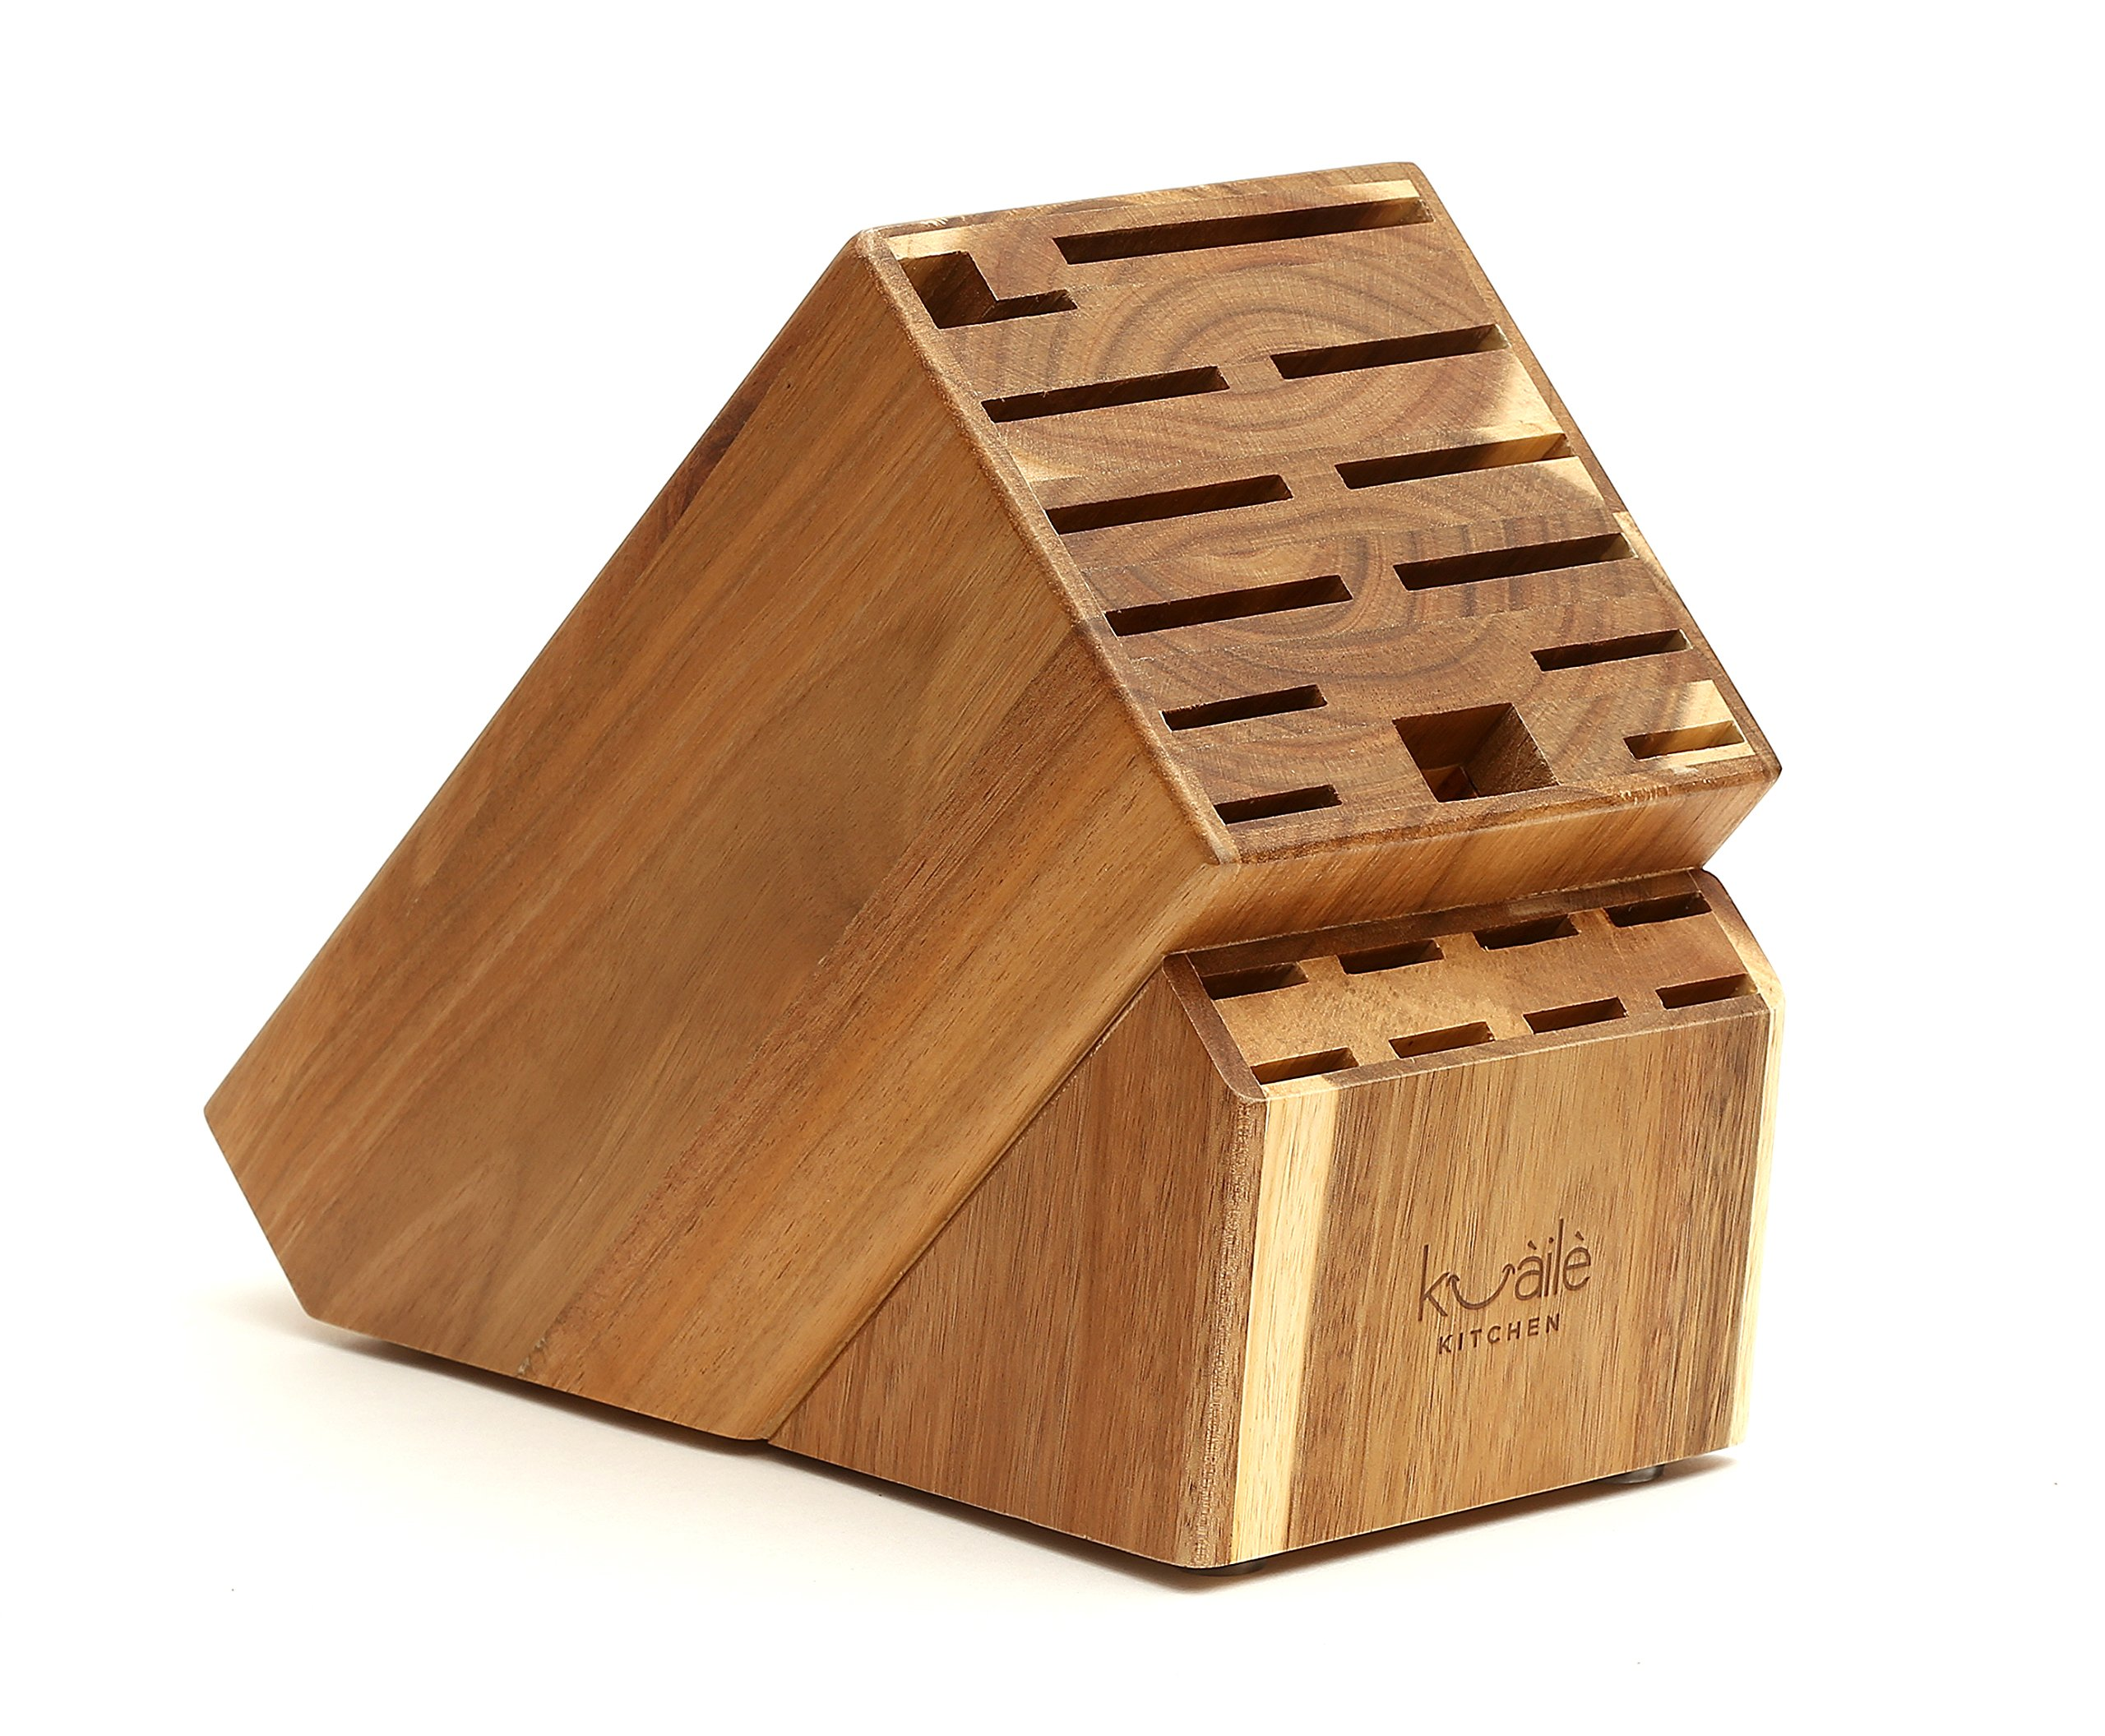 solid wood toy kitchen corner booth cheap play find deals on get quotations 21 slot universal knife storage block acacia without knives